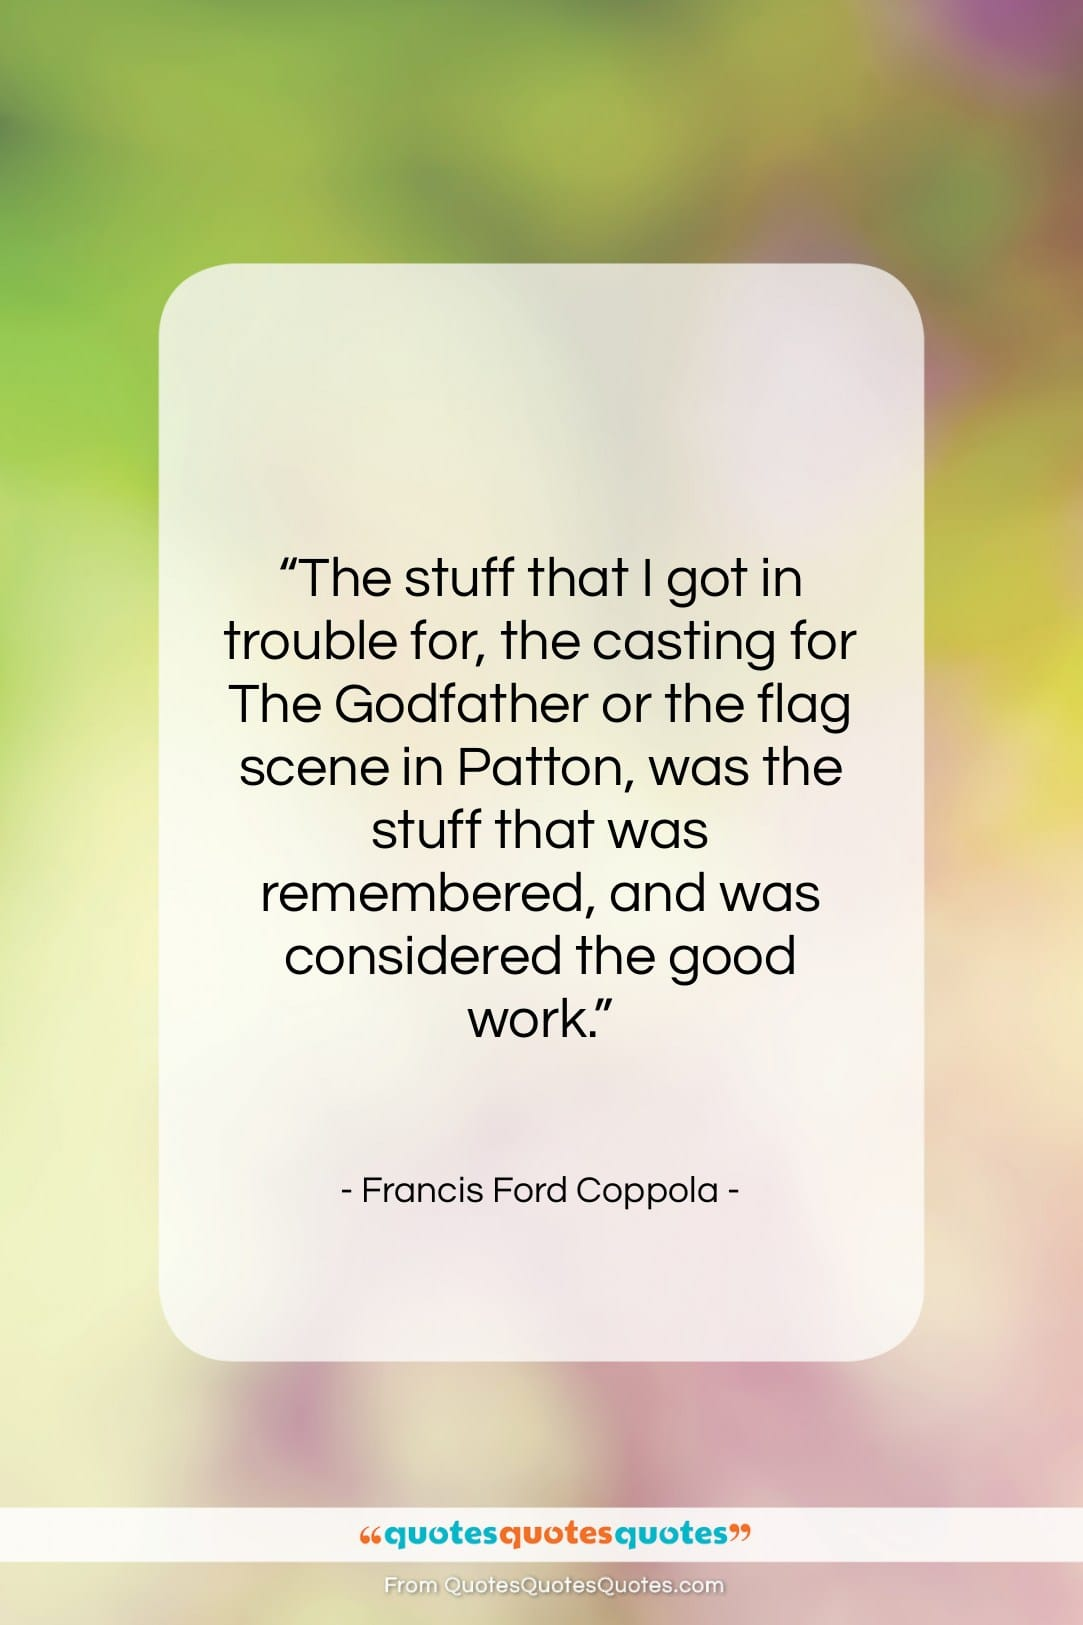 """Francis Ford Coppola quote: """"The stuff that I got in trouble…""""- at QuotesQuotesQuotes.com"""